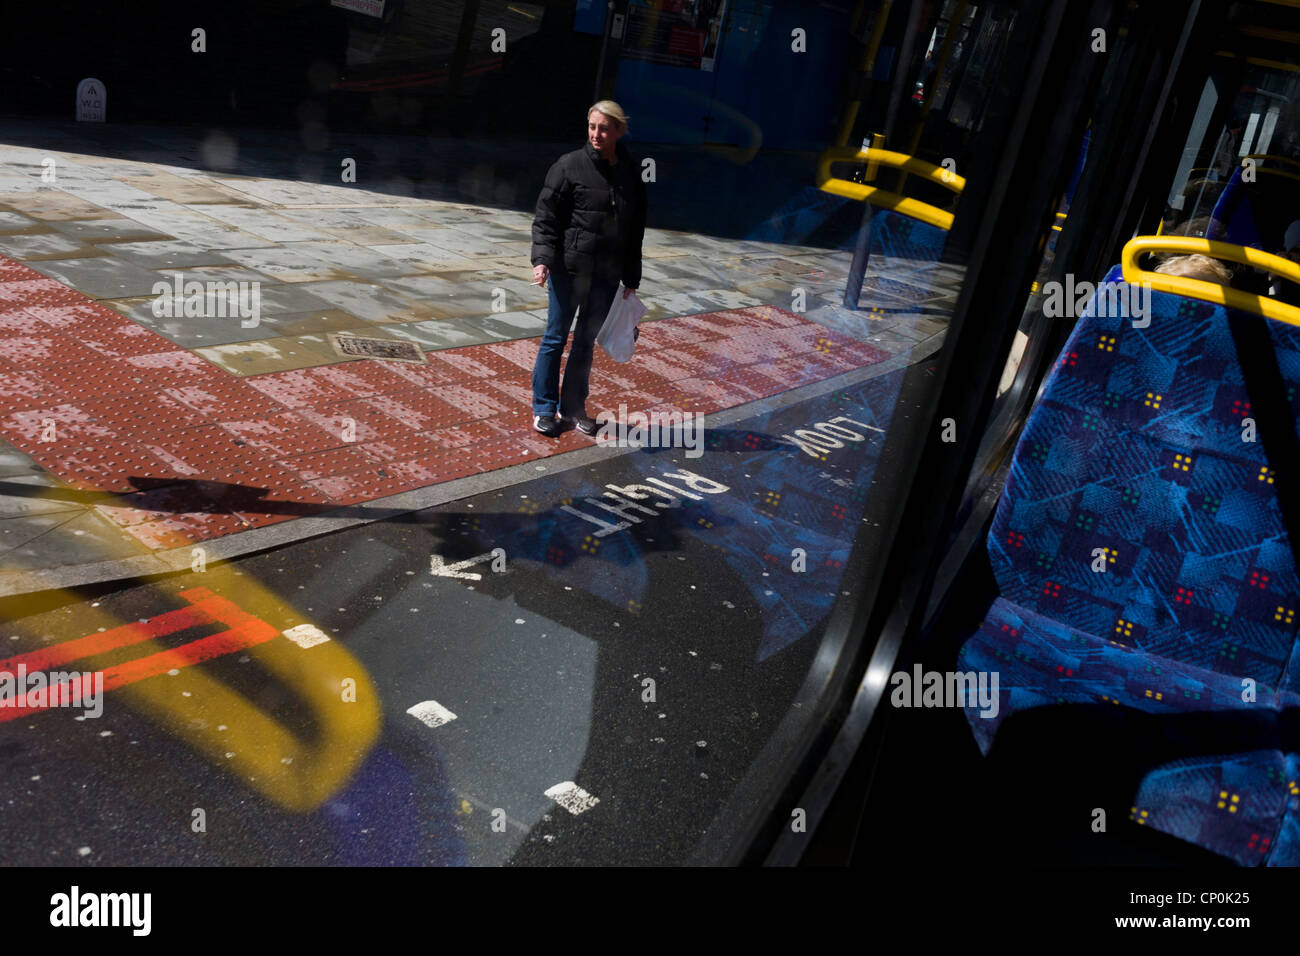 Lonely looking woman standing at the kerbside on a London street, seen from a travelling commuter bus. - Stock Image